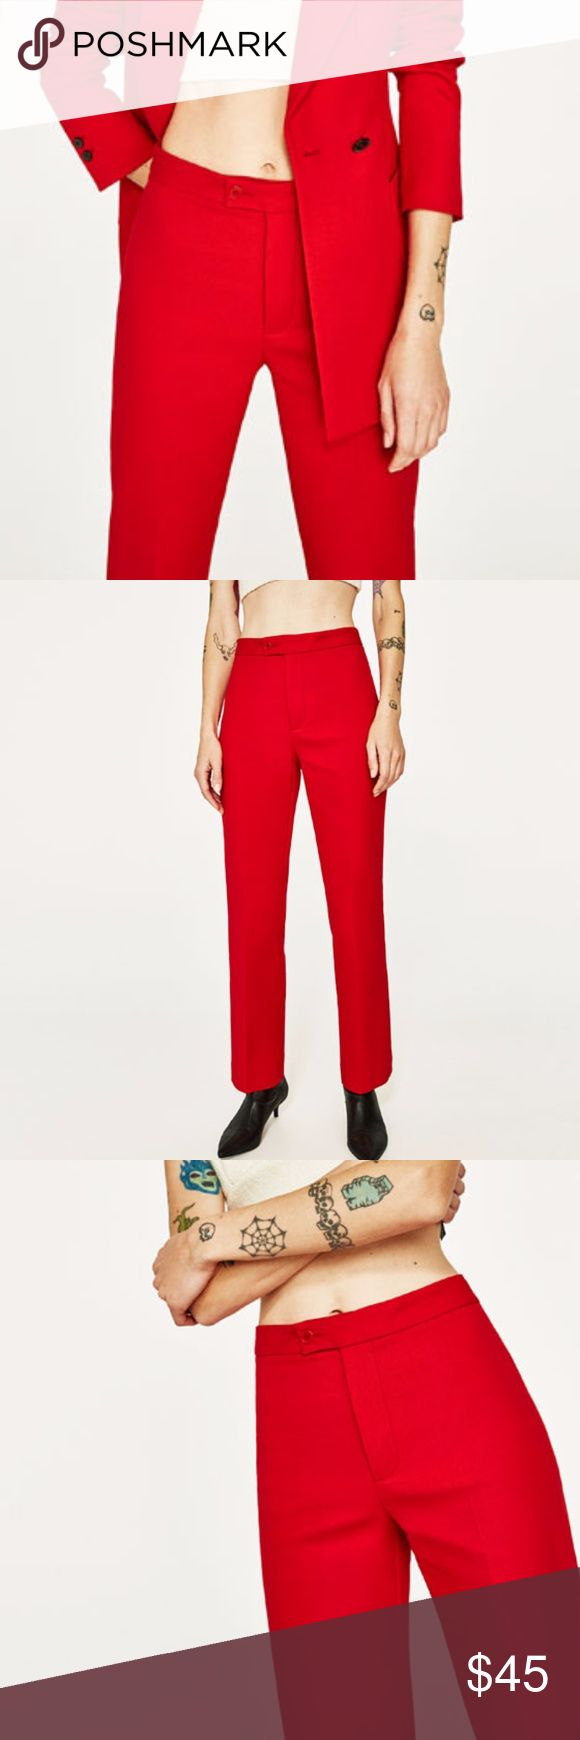 Zara Straight Cut Red Trousers Sz M ZARA WOMEN NEW COLLECTION!!  SS17 CROPPED STRAIGHT-CUT TROUSERS (2445/675) COLOR: RED  Straight, ankle-grazing trousers with front zip and hook and eye clasp fastening.  81% cotton, 17% polyamide, 2% elastane.  Brand new with tags// Size Medium Zara Pants Trousers